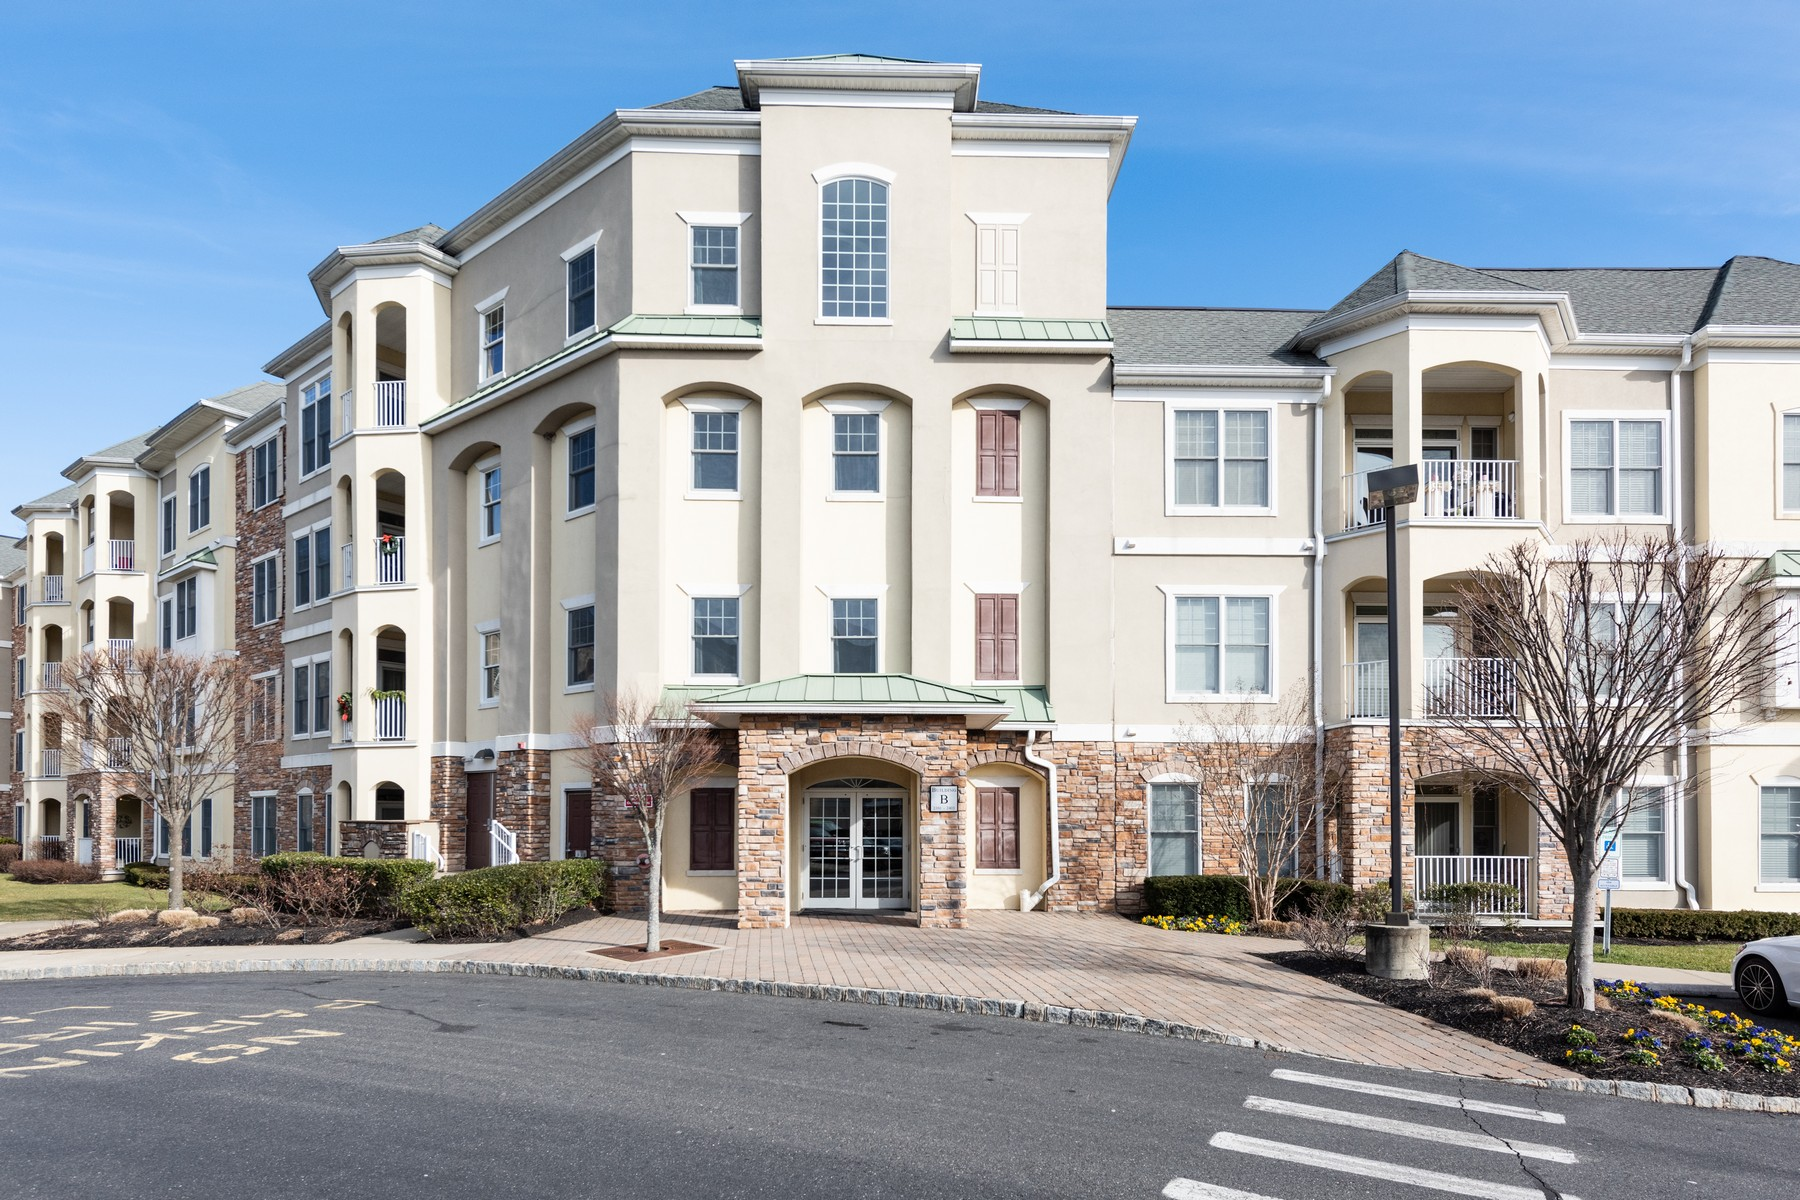 Condominiums للـ Sale في 2223 Xanadu Lane, Wall Wall, New Jersey 07719 United States